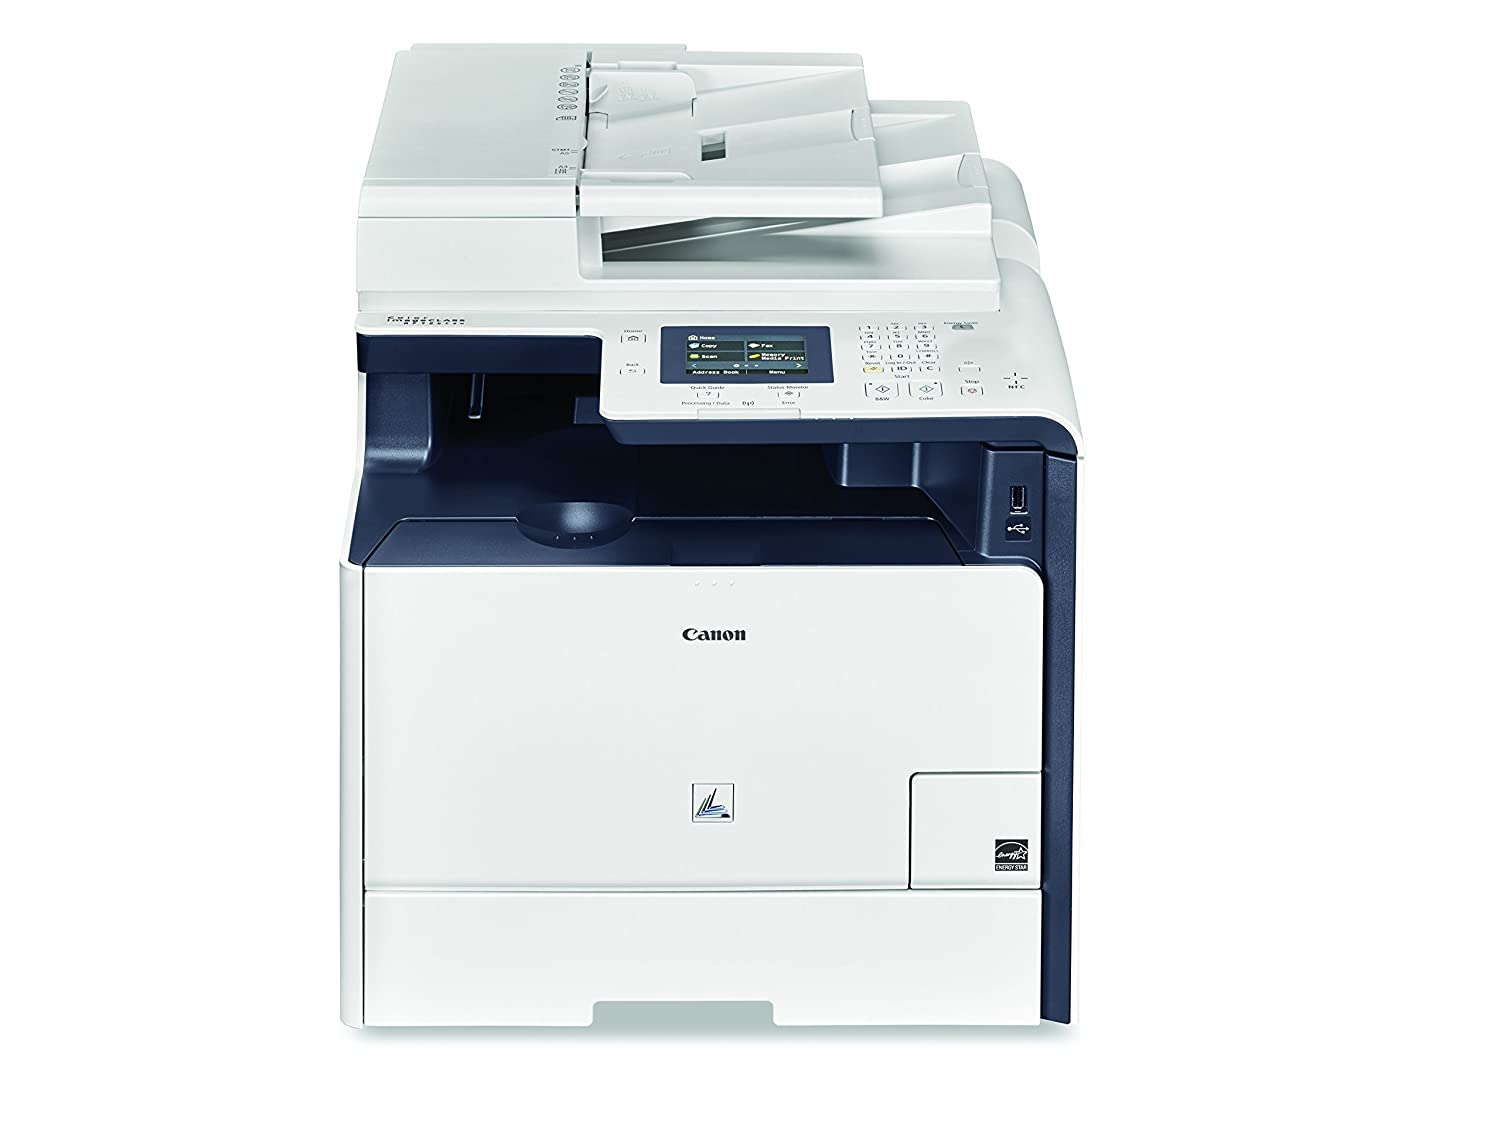 Amazon.com: Canon Lasers Color imageCLASS MF726Cdw Wireless Color Photo  Printer with Scanner, Copier & Fax: Electronics